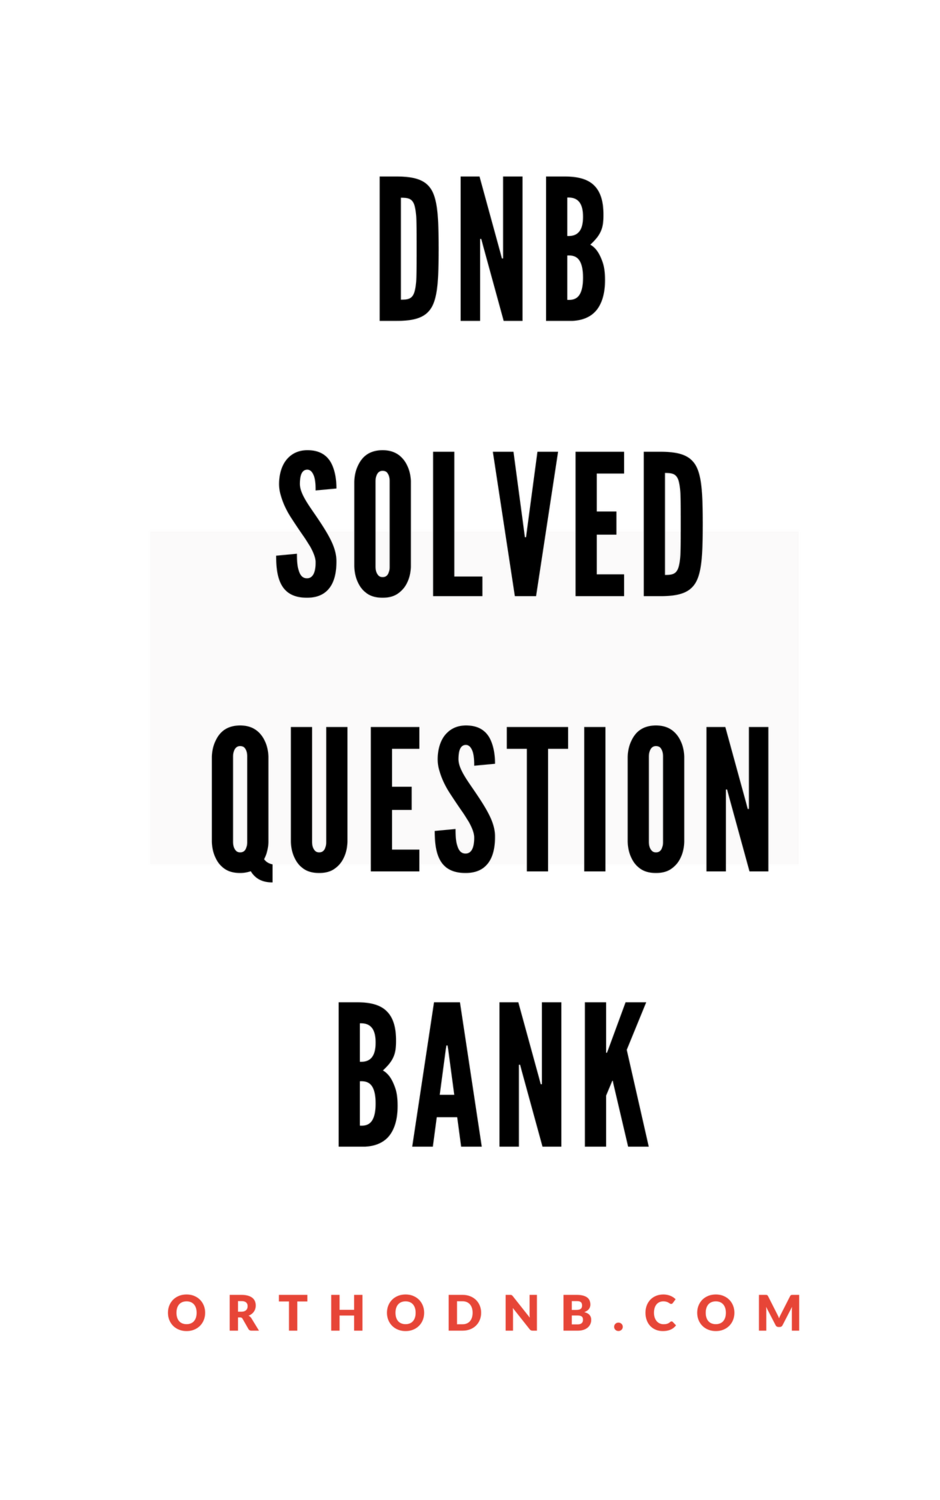 DNB Solved Question Bank with Answers android app